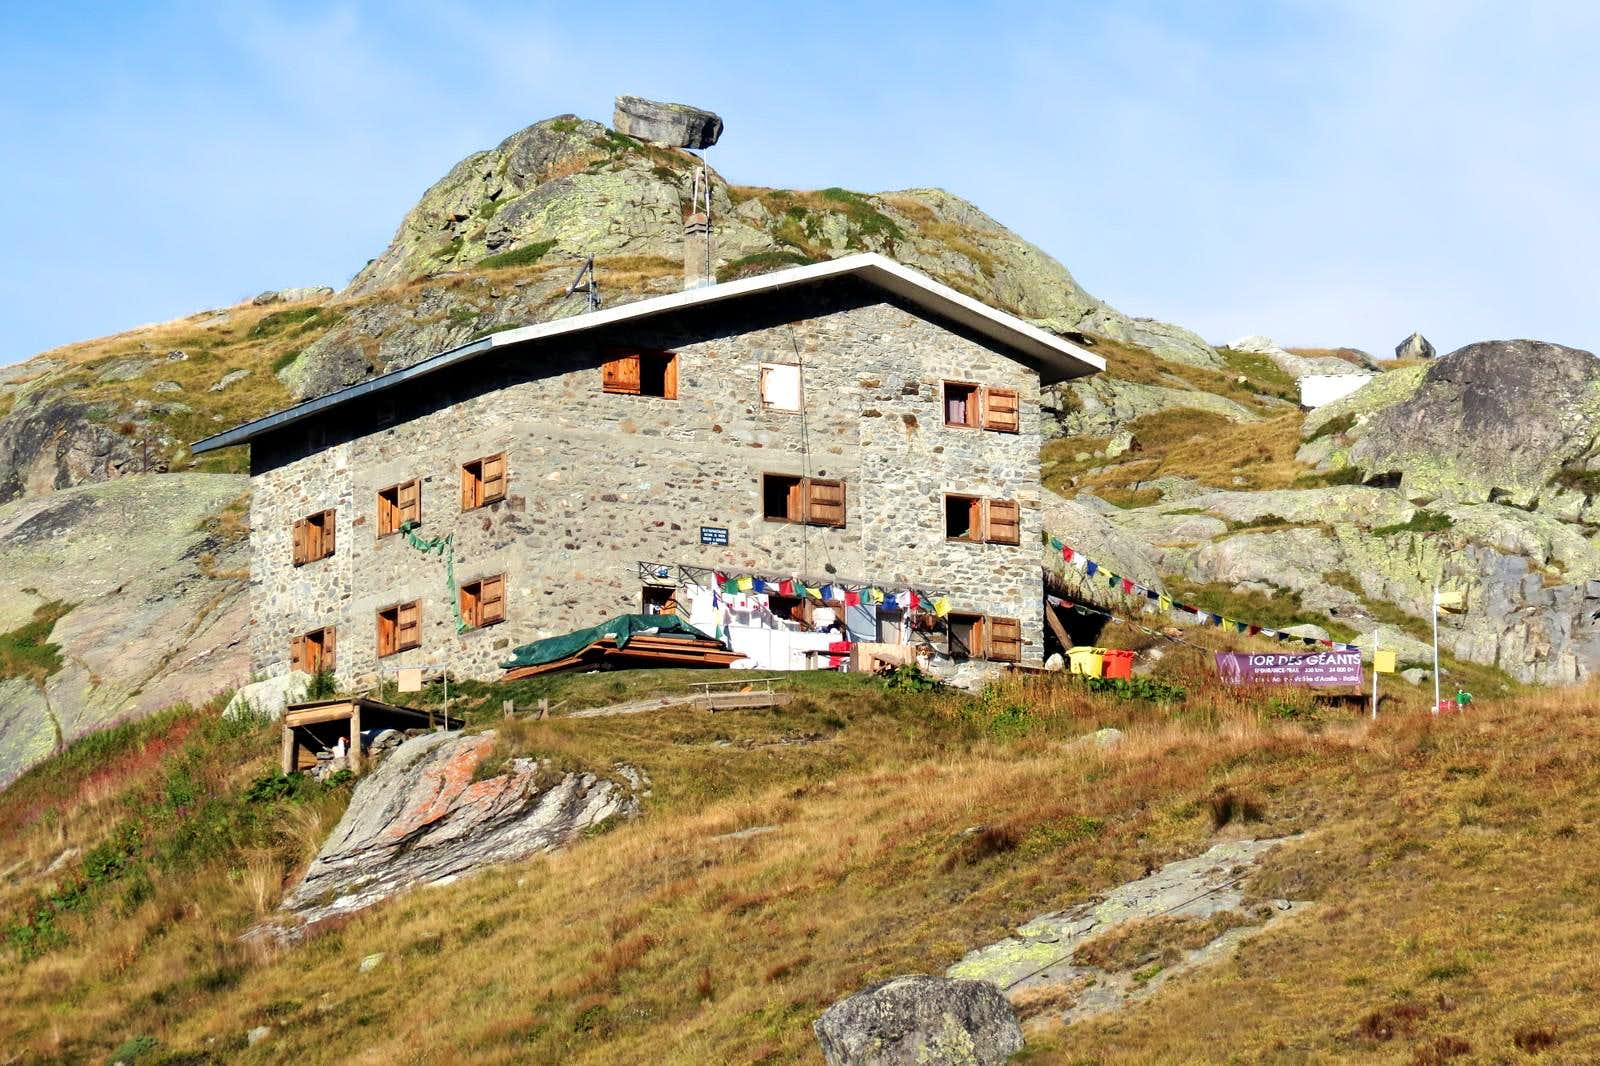 <font color=ff7000>⌂</font>Alpine REFUGES in the Aosta Valley &quot;La Thuile Valley&quot;